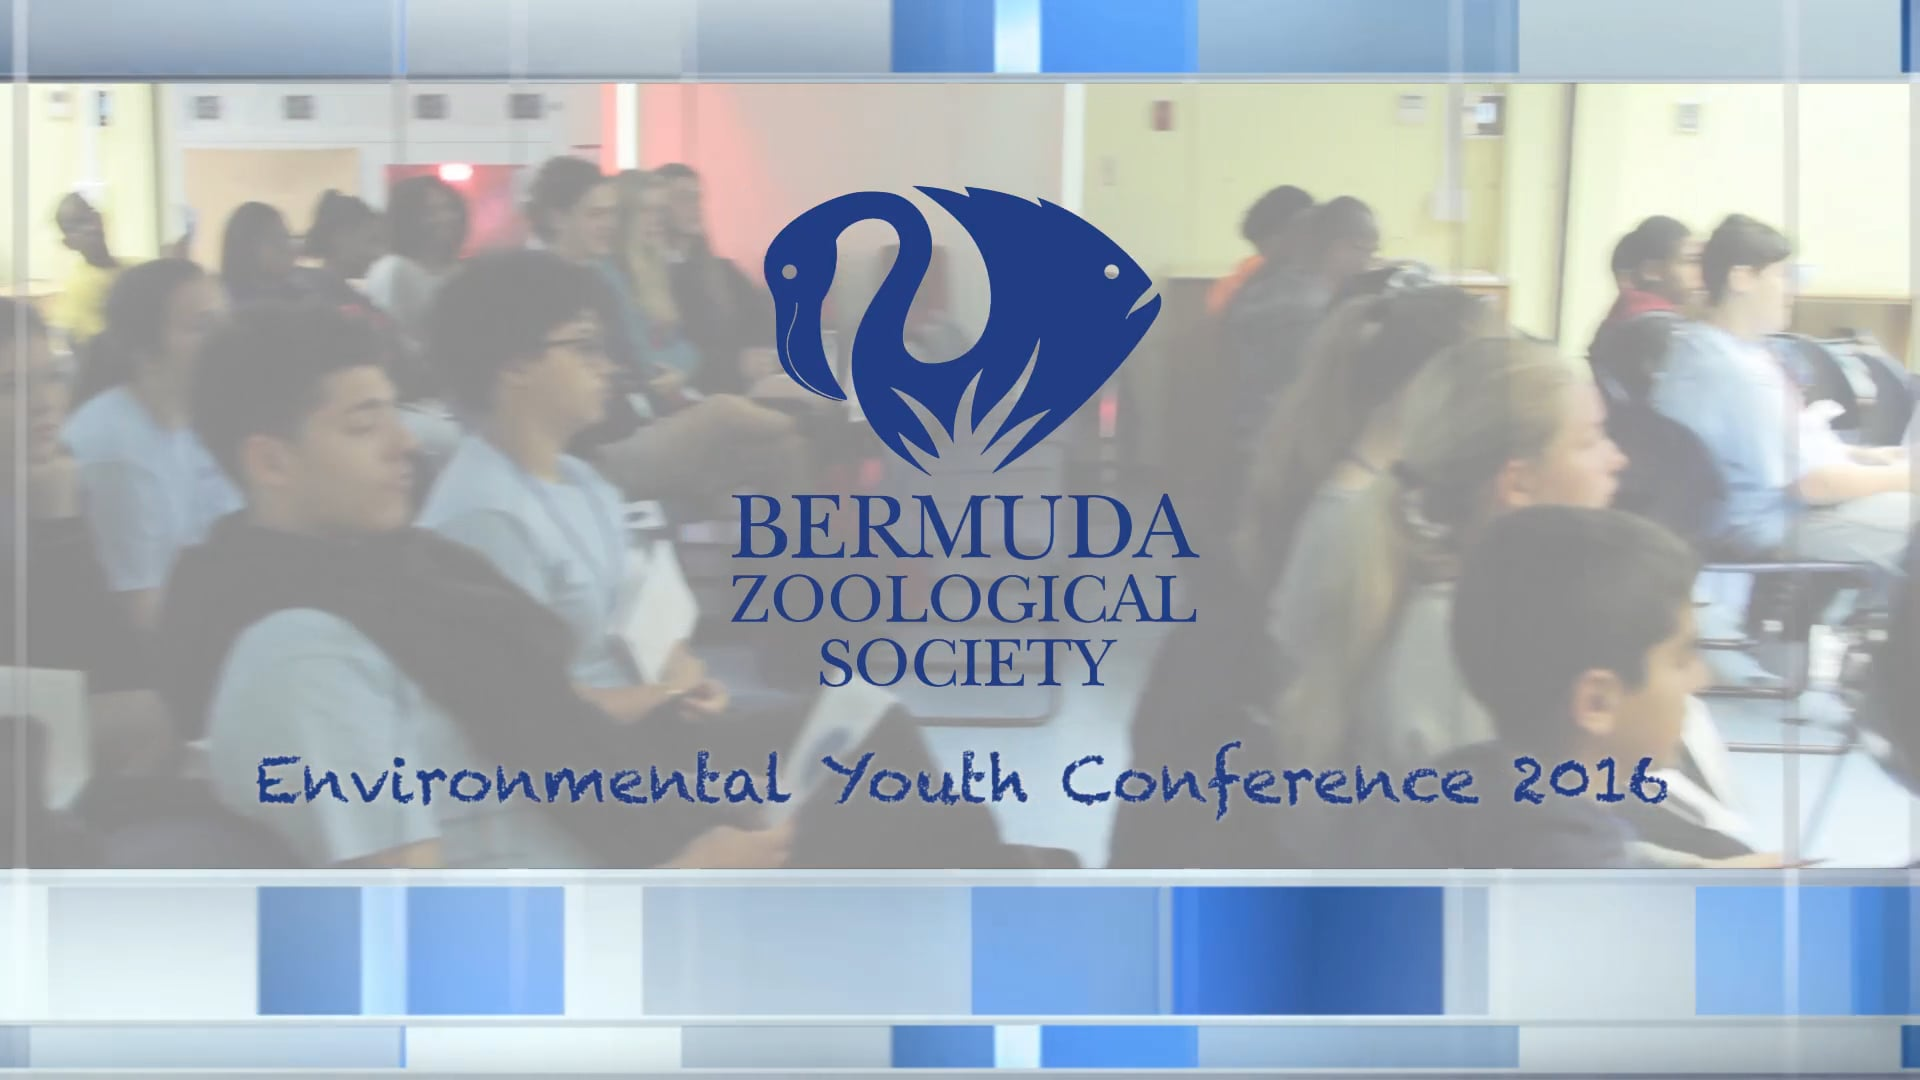 BZS Environmental Youth Conference 2016